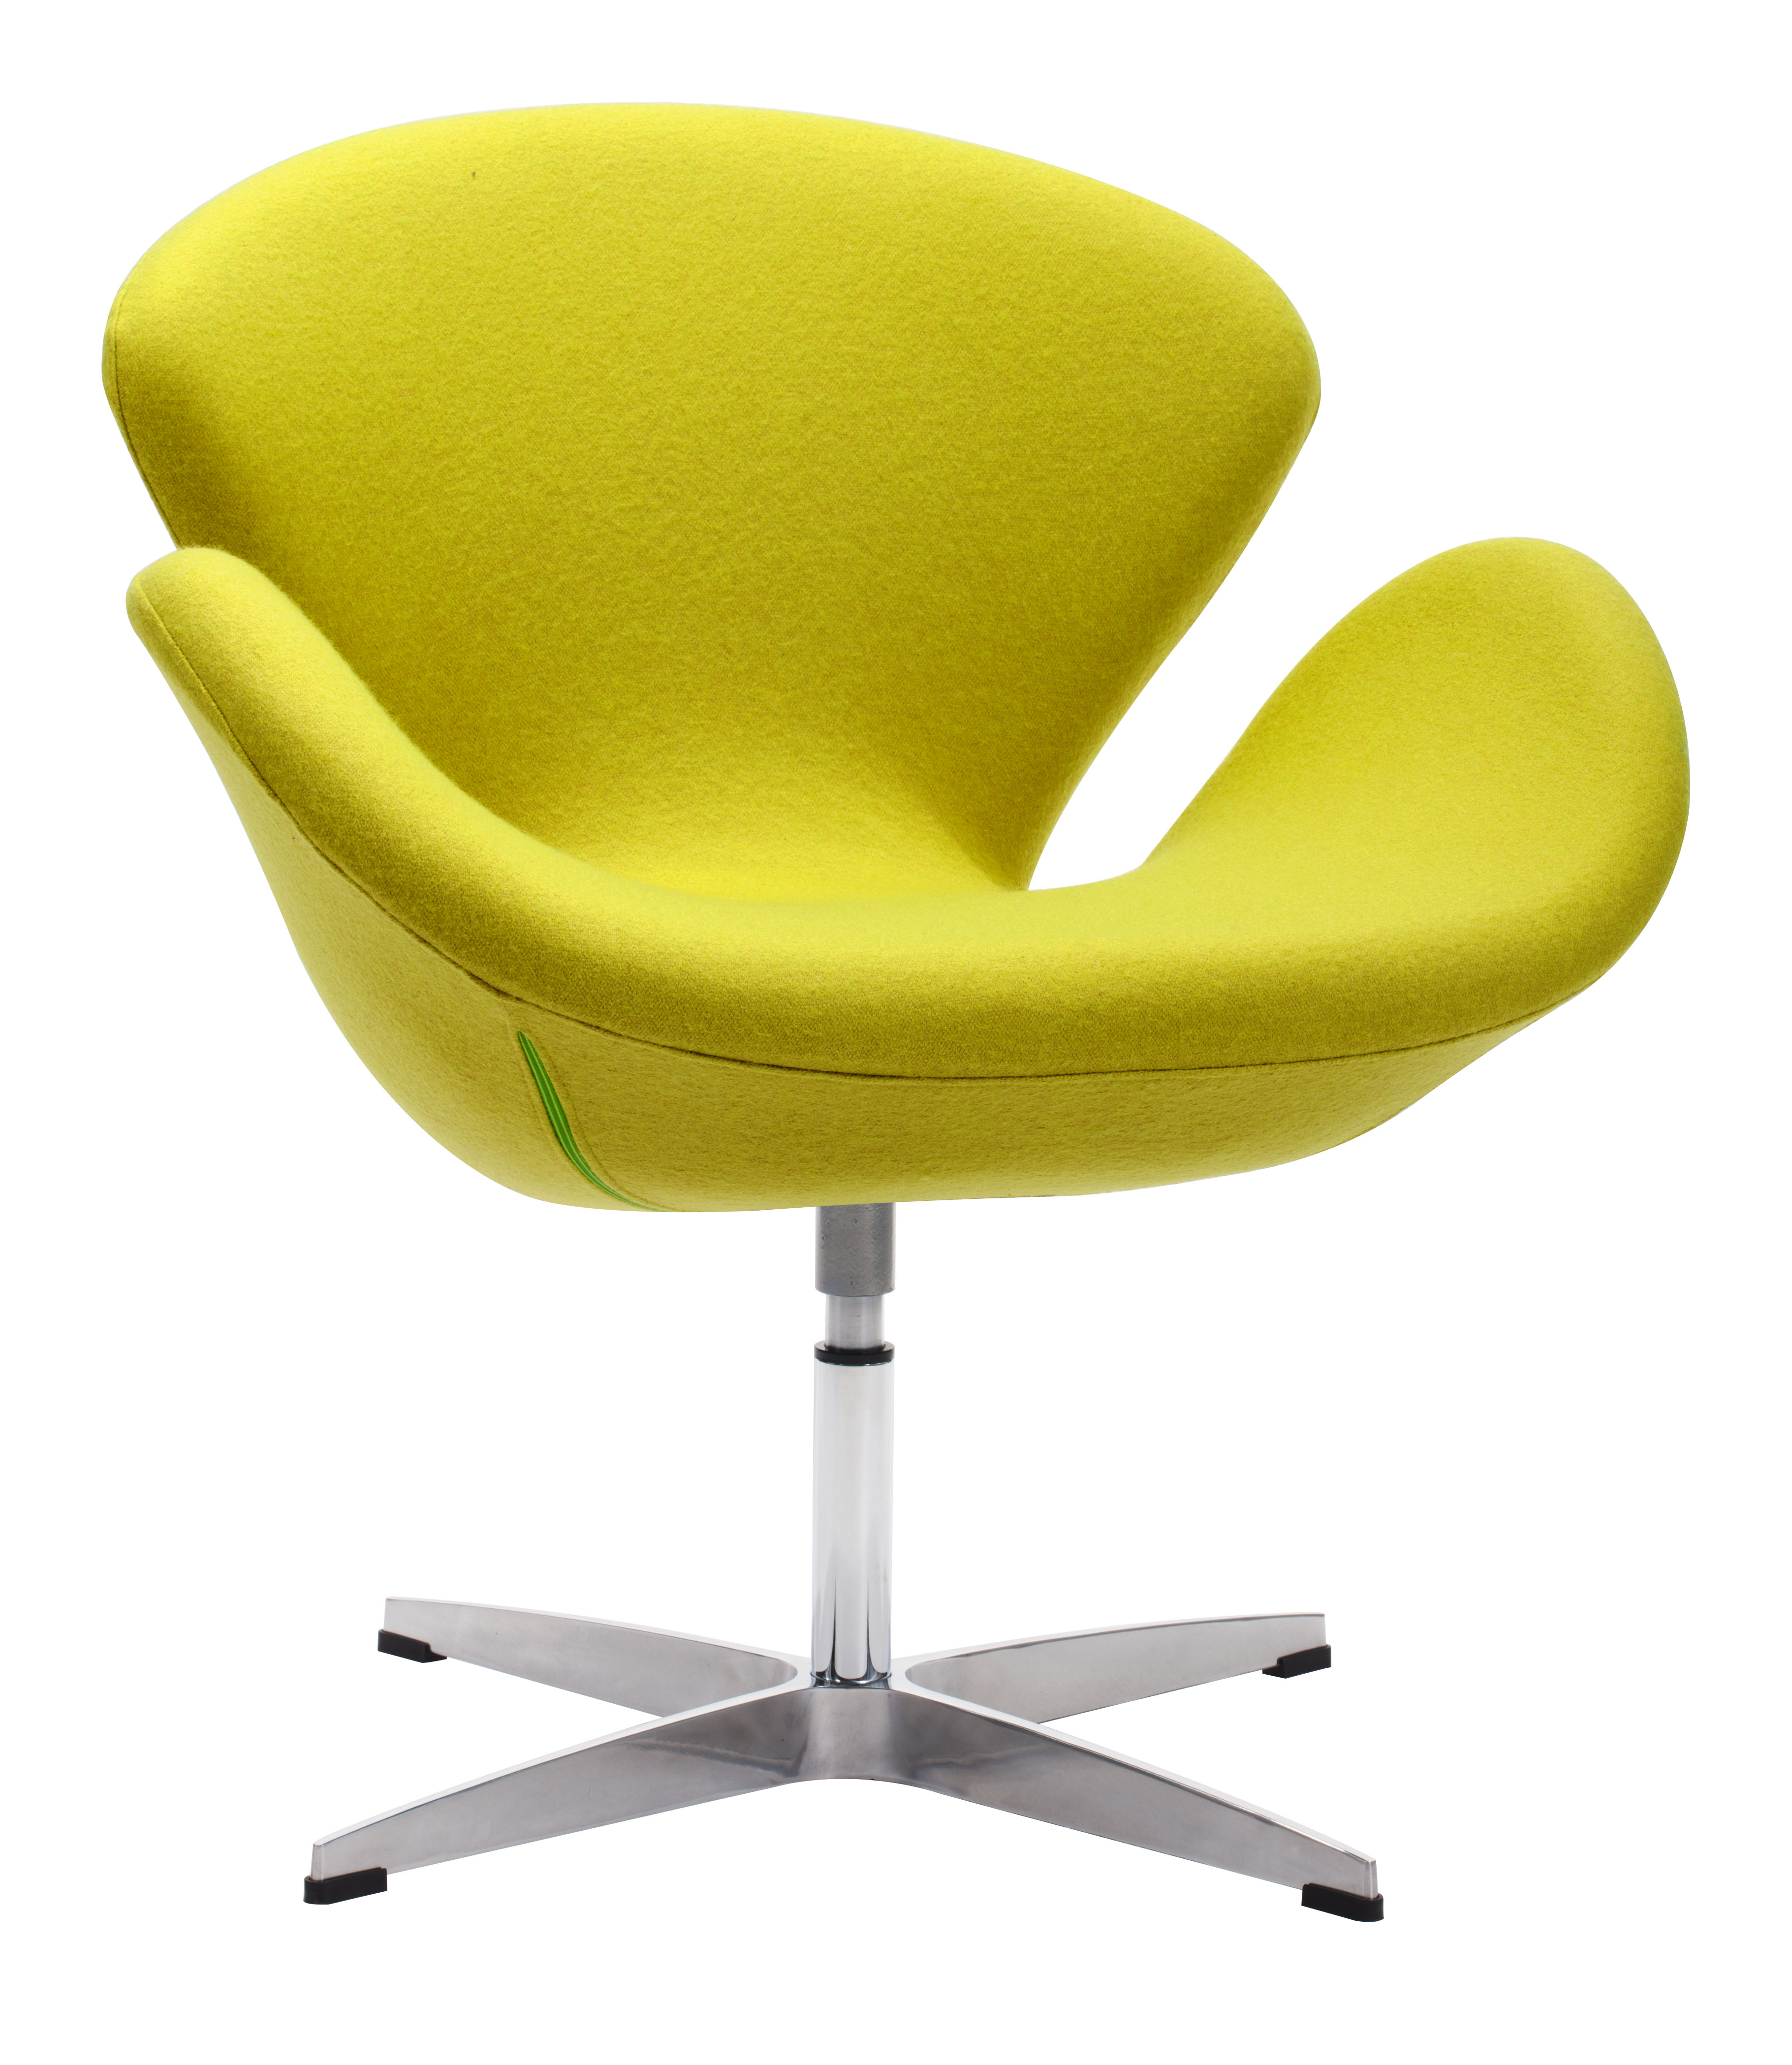 Image Is Loading Zuo Pori Modern Occasional Chair In Pistachio Green